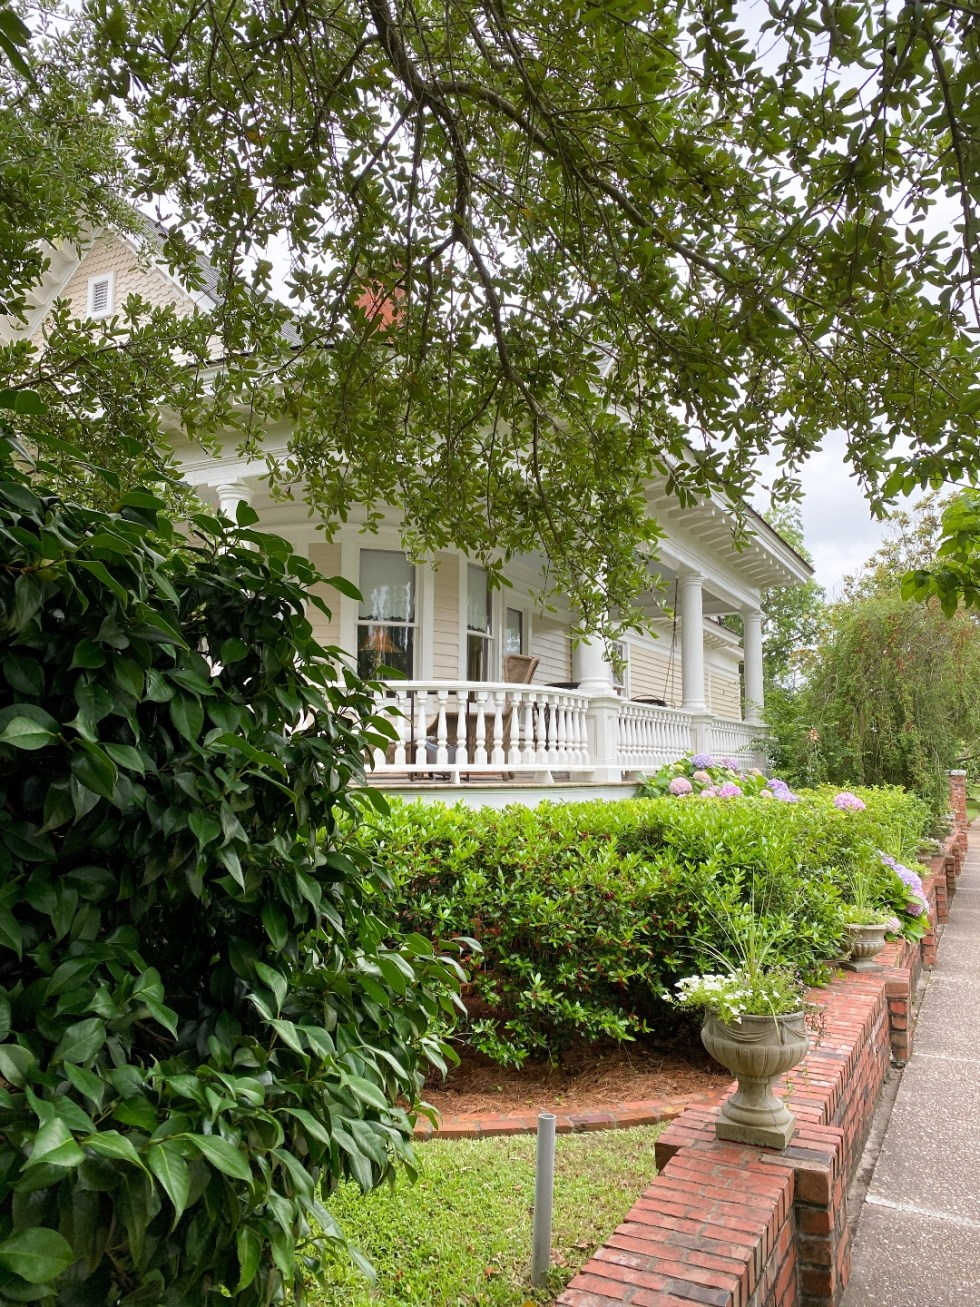 What to Do in Oriental, NC - I'm Fixin' To - @imfixintoblog | Things to do in Oriental NC by popular NC travel blog, I'm Fixin' To: image of a cream colored house with wrap around porch.